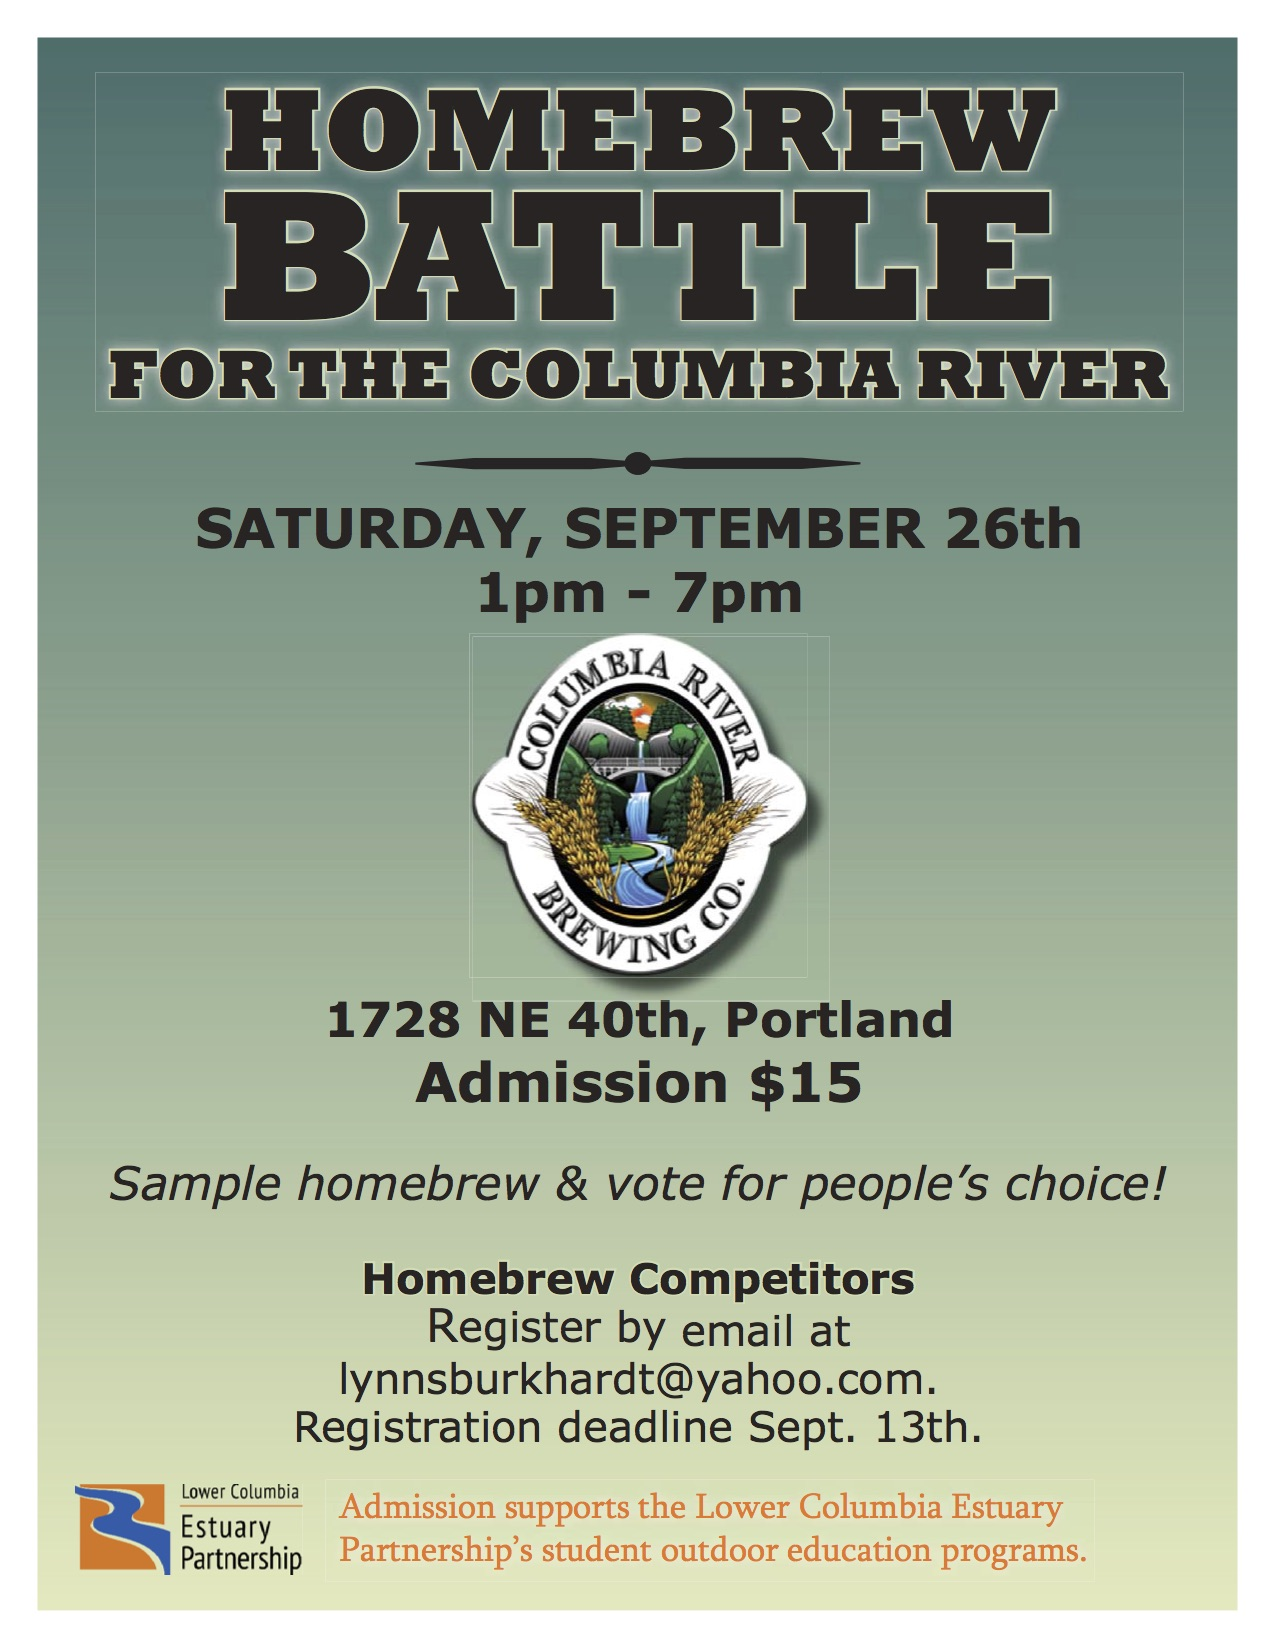 Homebrew Battle for the Columbia River